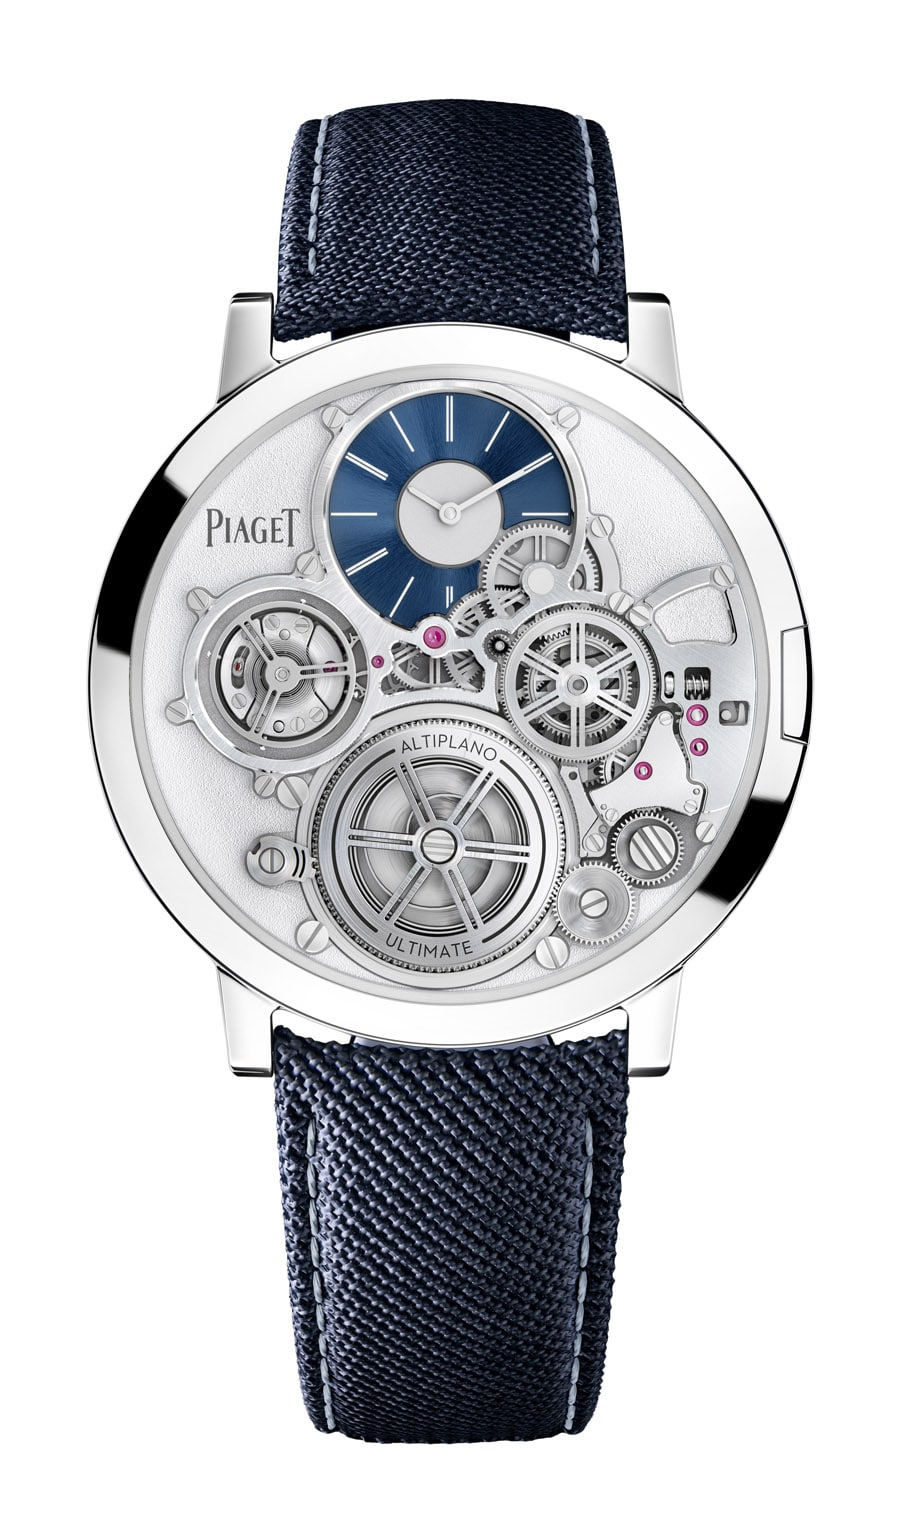 Piaget Altiplano Ultimate Silver